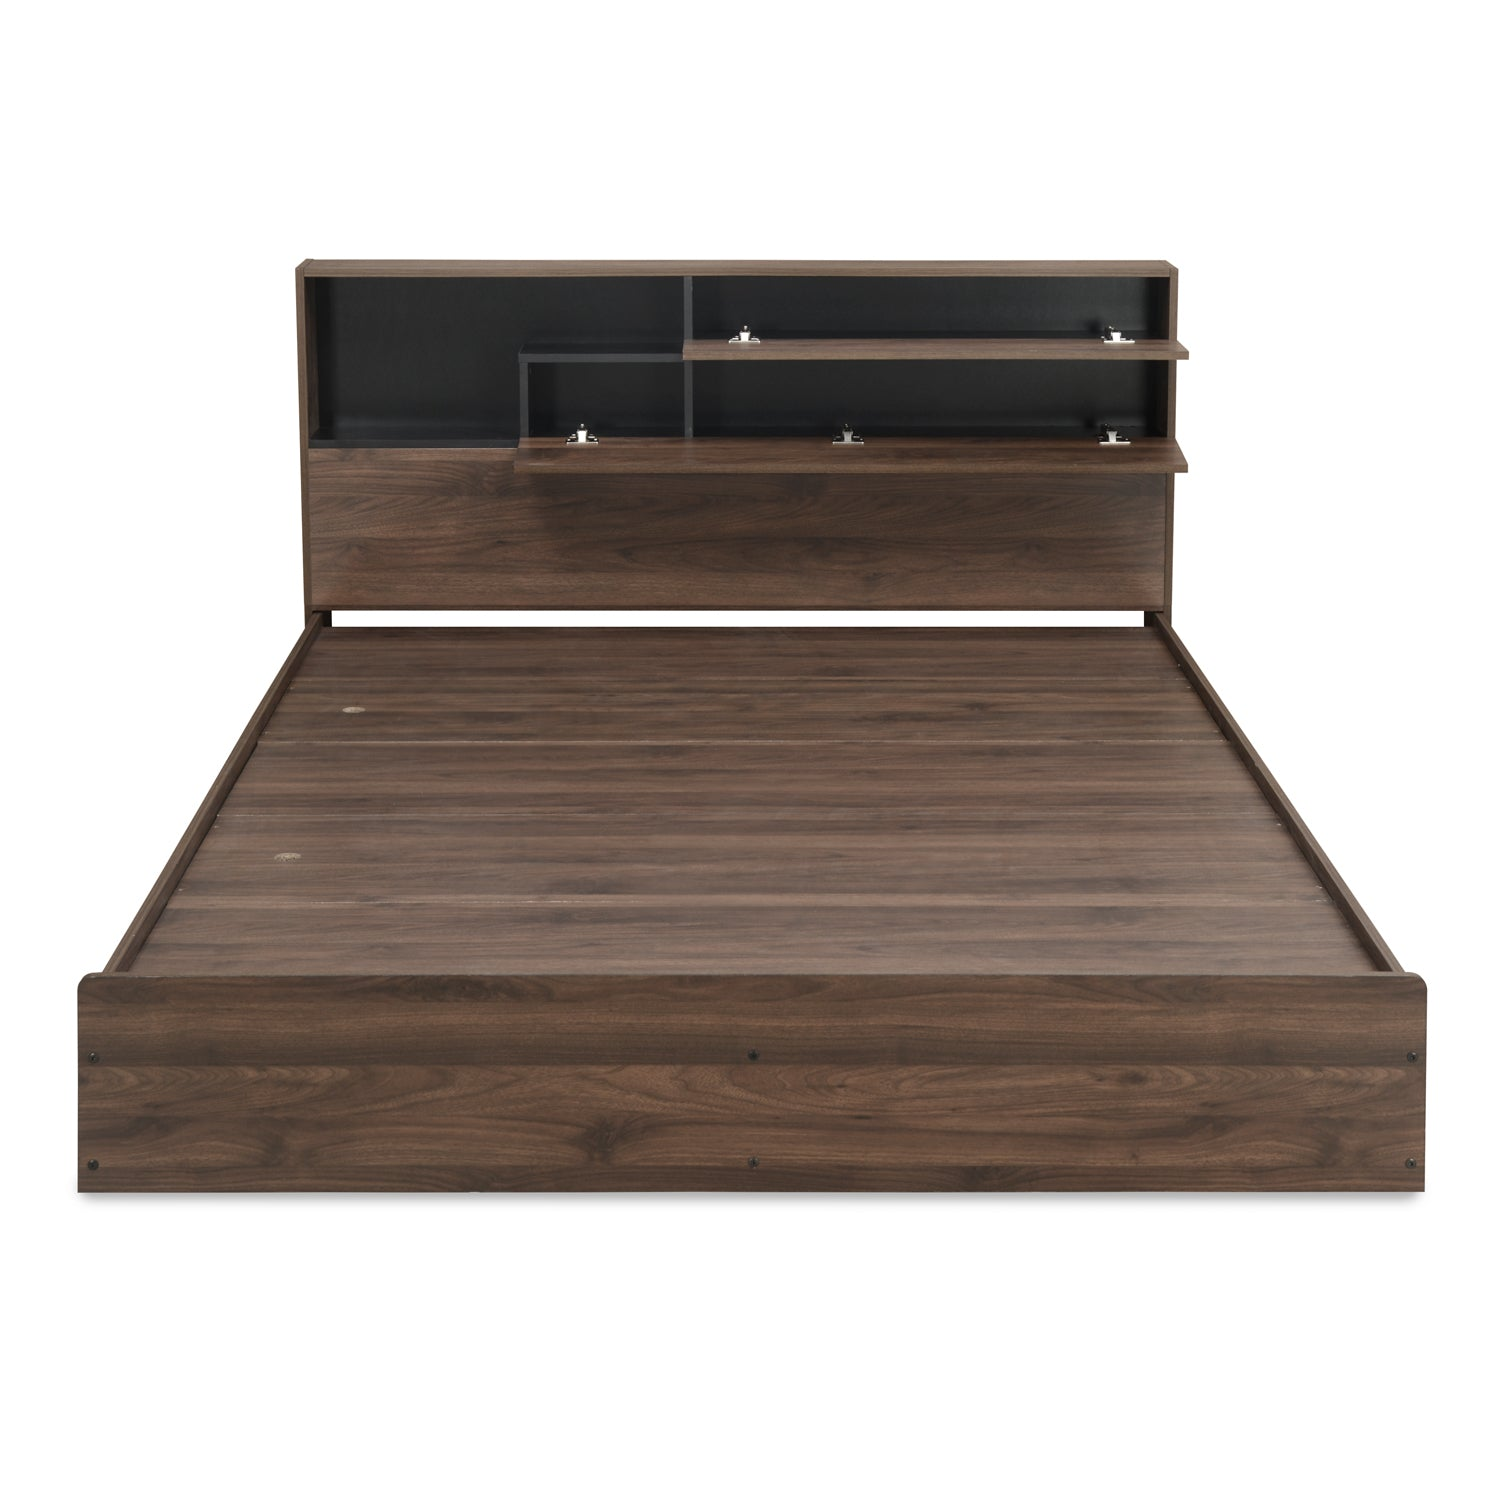 Borden Queen Bed With Headboard Storage Wenge Nilkamal At Home Home